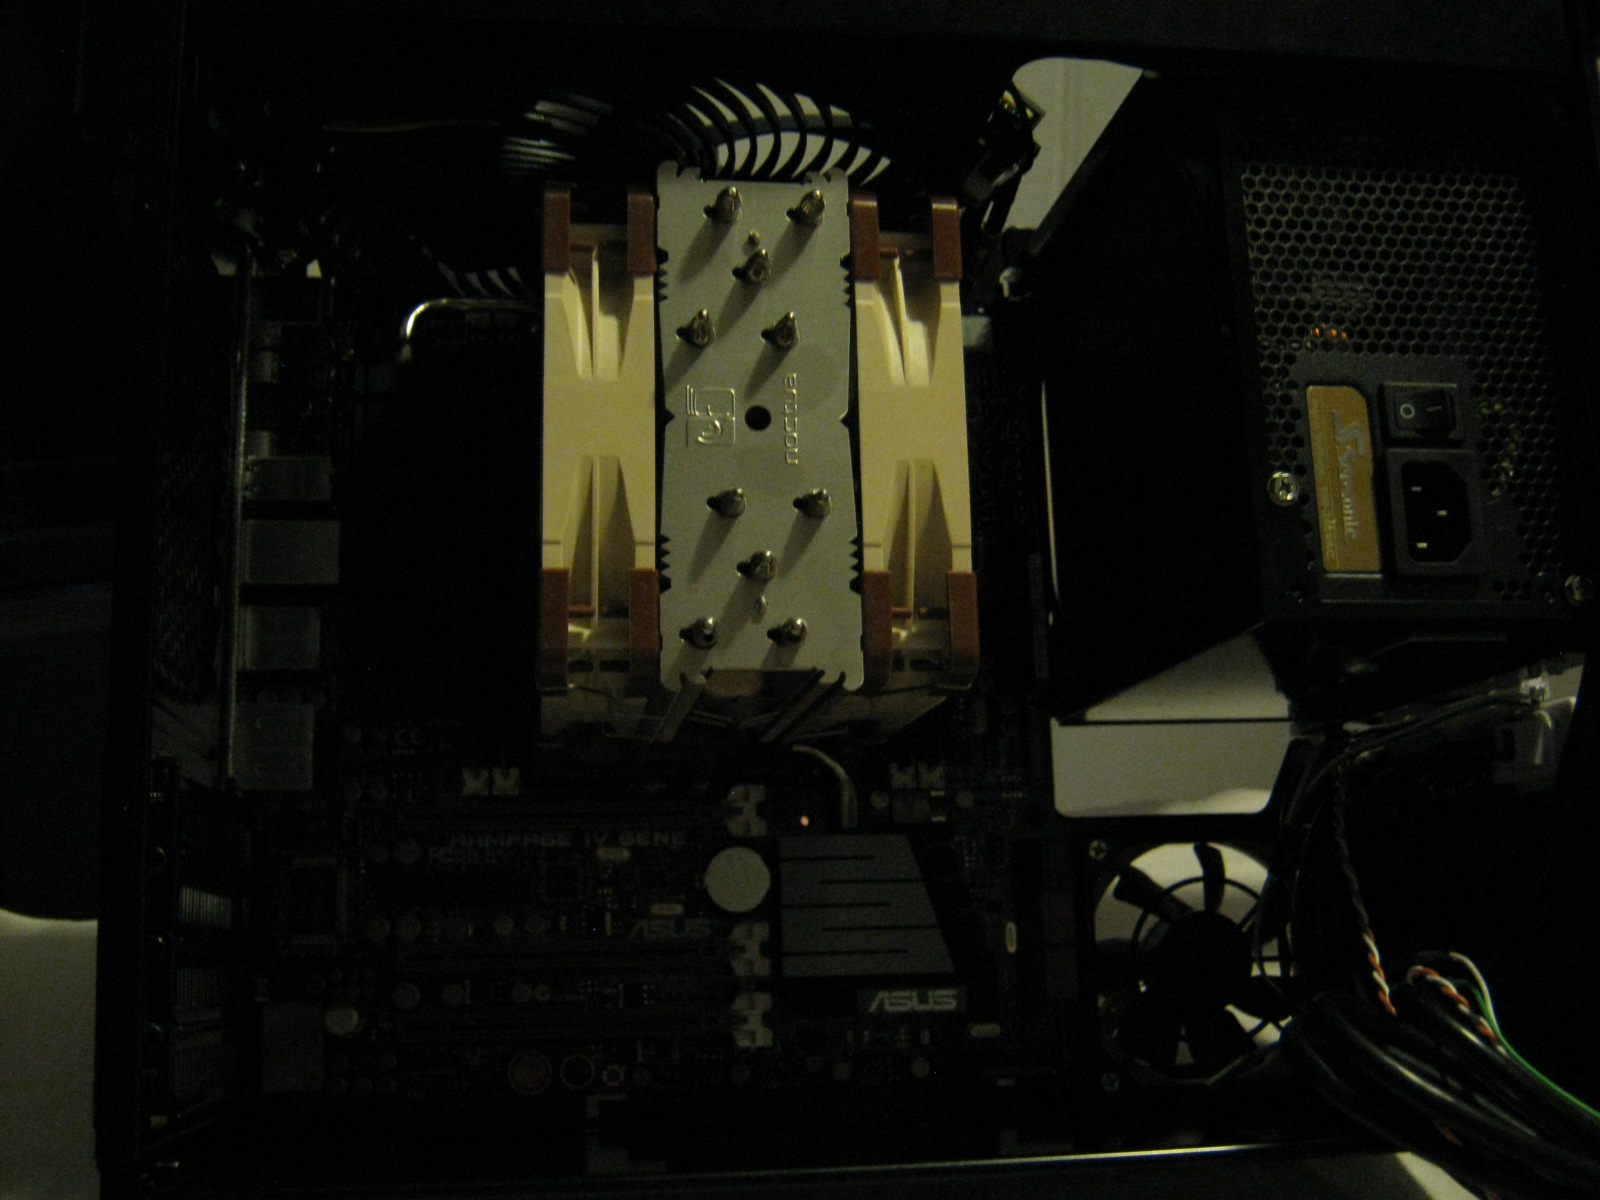 Noctua NH-U12s cooler mounted with NF-12 PWM fans in push/pull